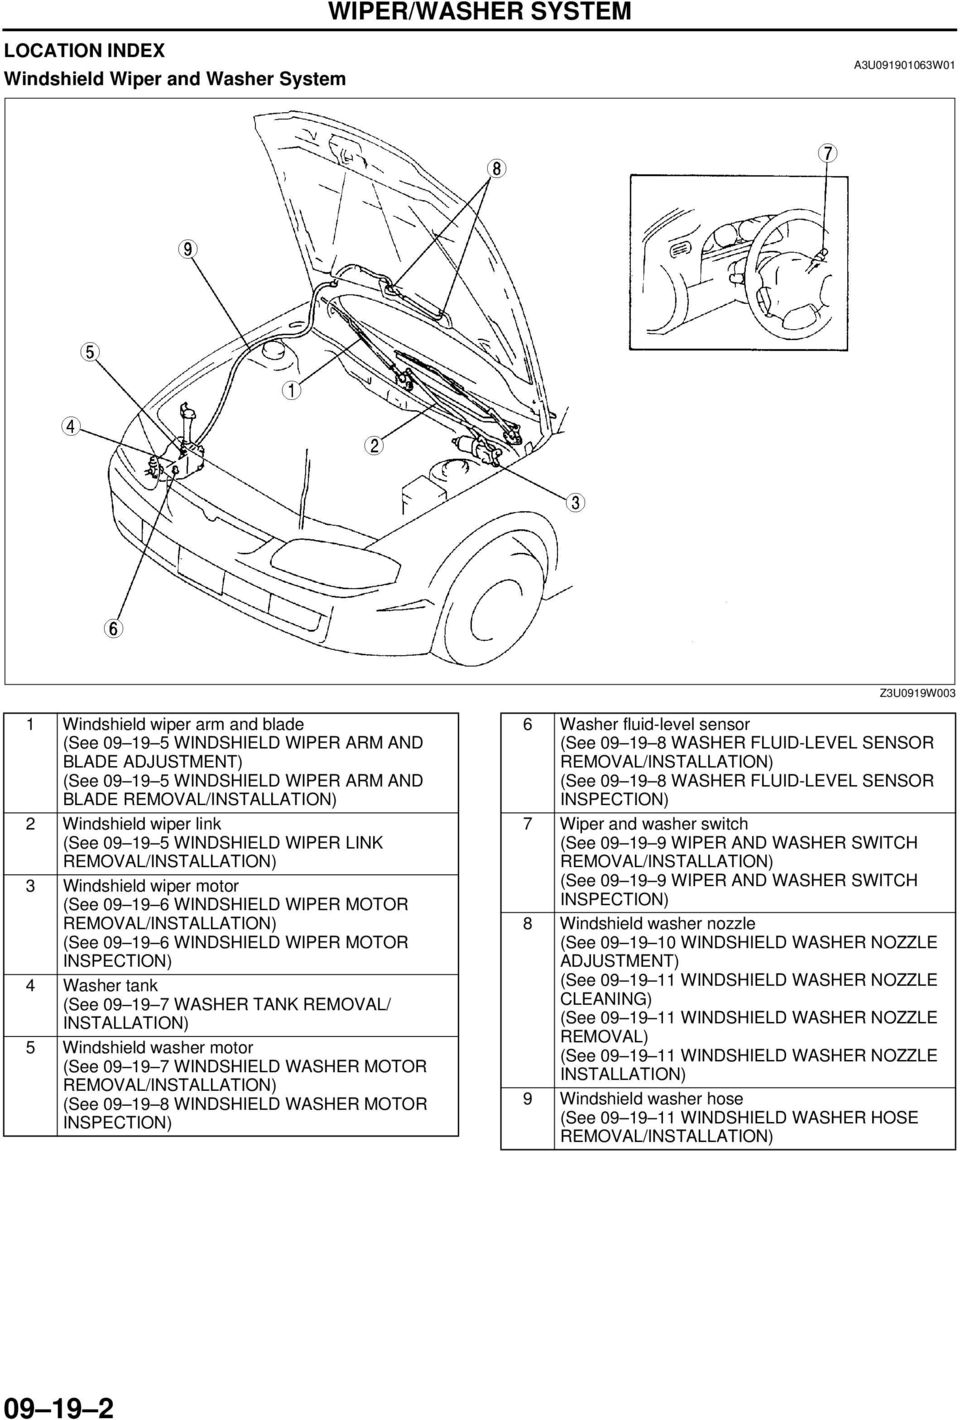 hight resolution of washer tank removal installation 5 windshield washer motor see 09 19 7 windshield